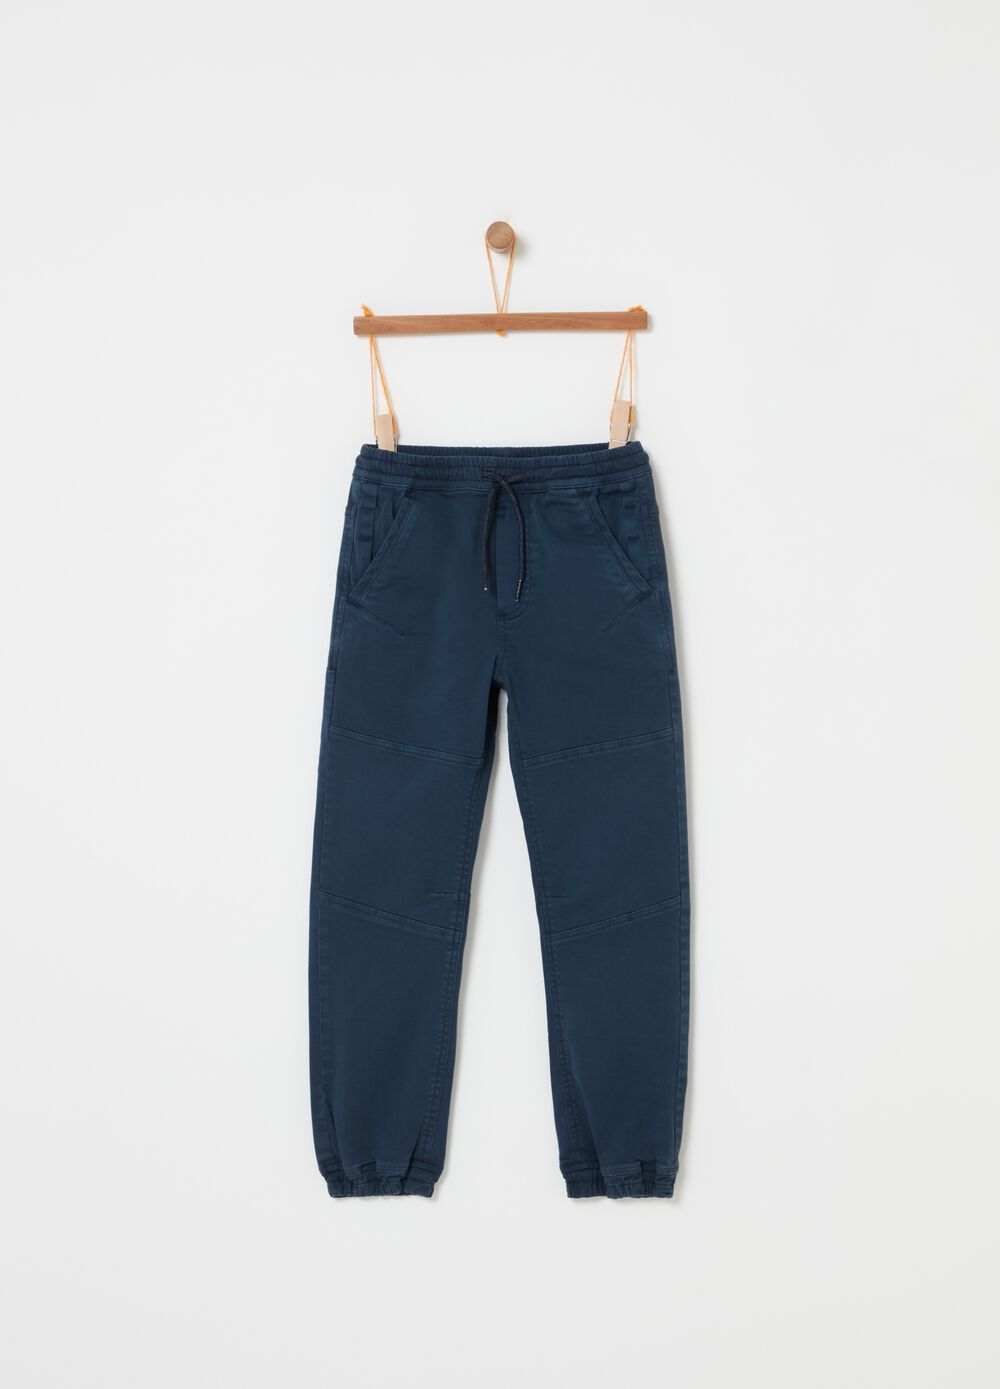 Stretch cotton twill joggers with drawstring